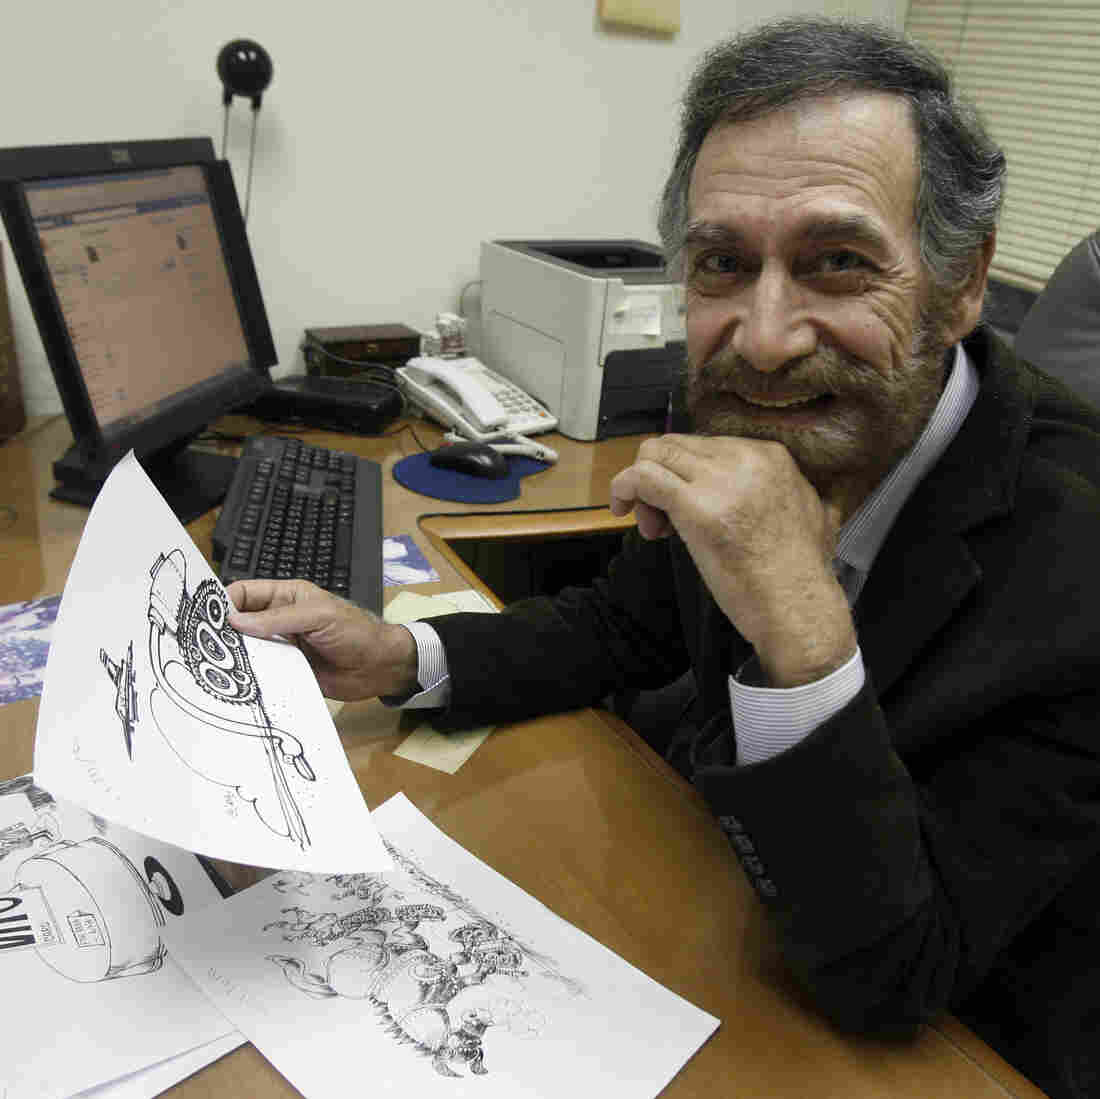 Syrian political cartoonist Ali Farzat sits at his desk at a Kuwaiti newspaper on Dec. 14, 2011. Earlier that year, Farzat was badly beaten in retaliation for cartoons that mocked Syrian President Bashar Assad.